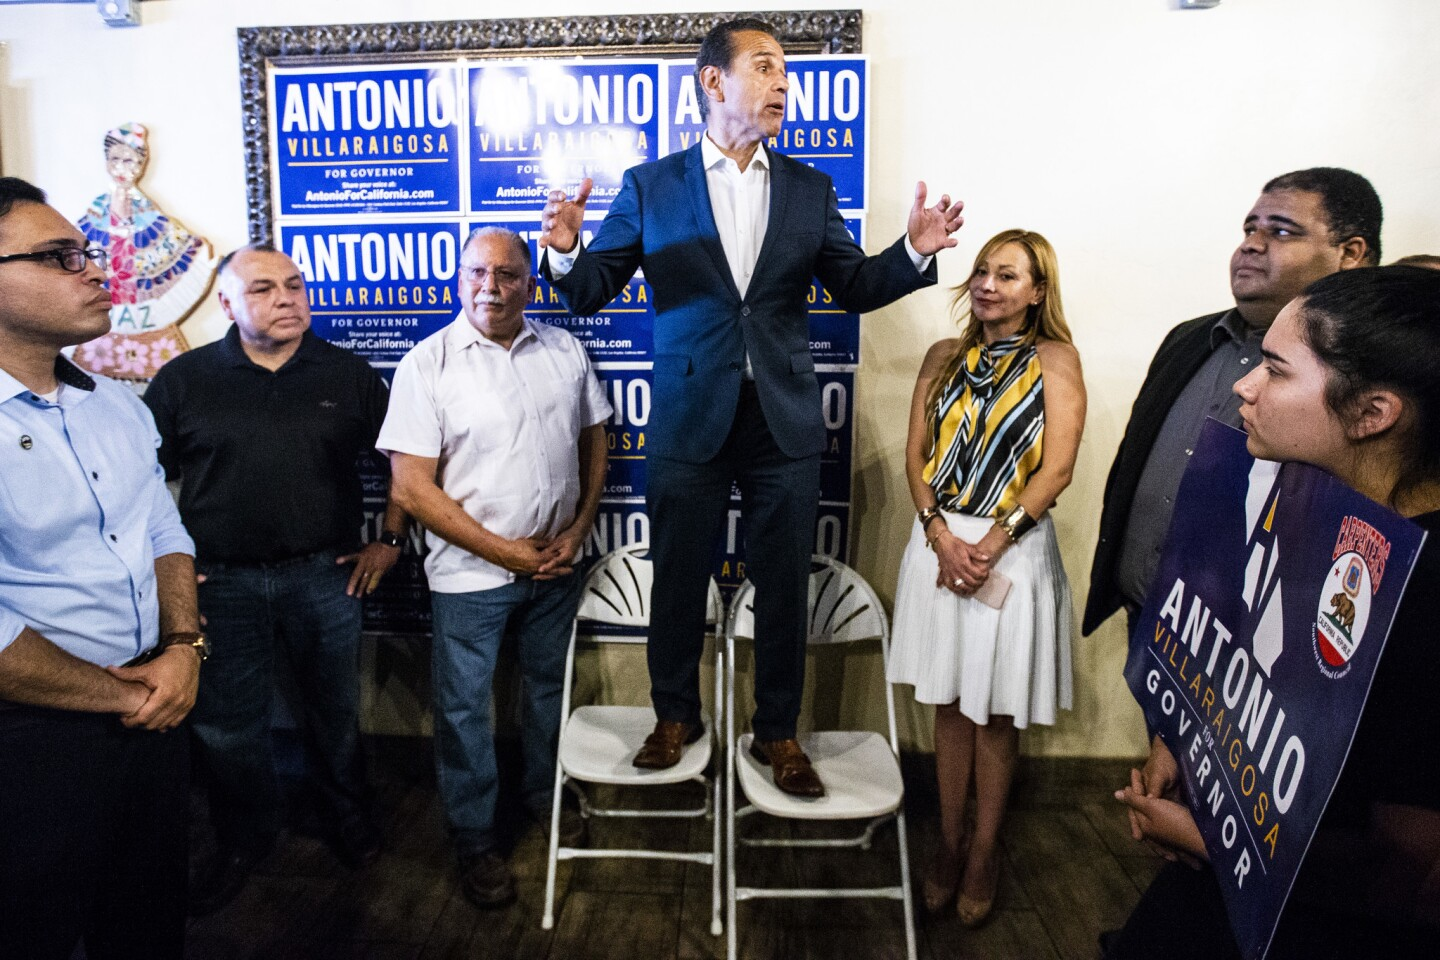 Gubernatorial candidate Antonio Villaraigosa, center, speaks at a campaign event with a carpenters union at a Riverside restaurant on Sunday.